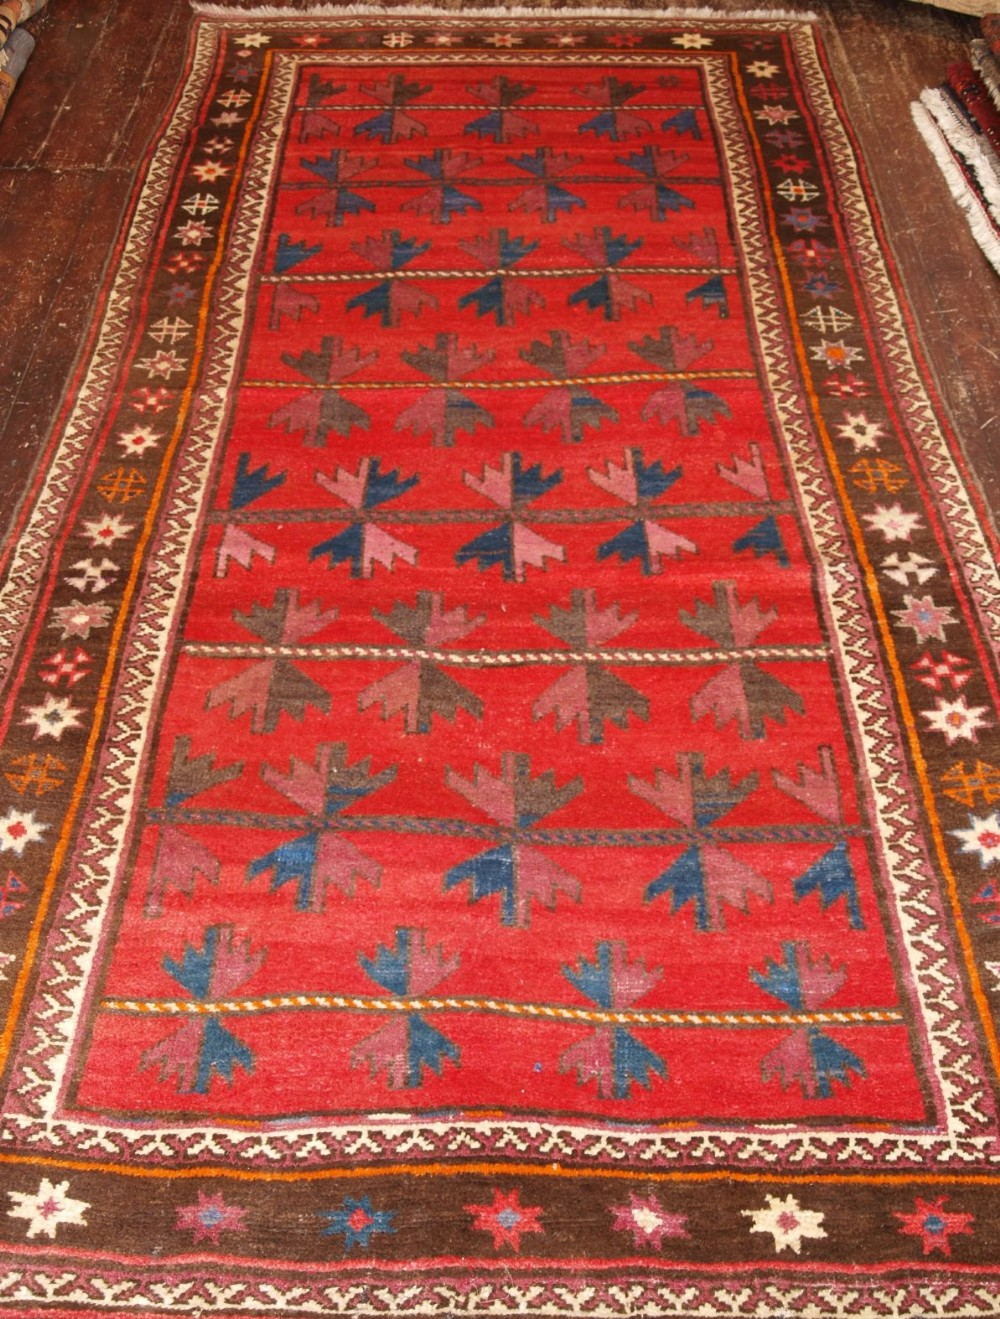 old afghan village rug unusual design great condition about 60 years old